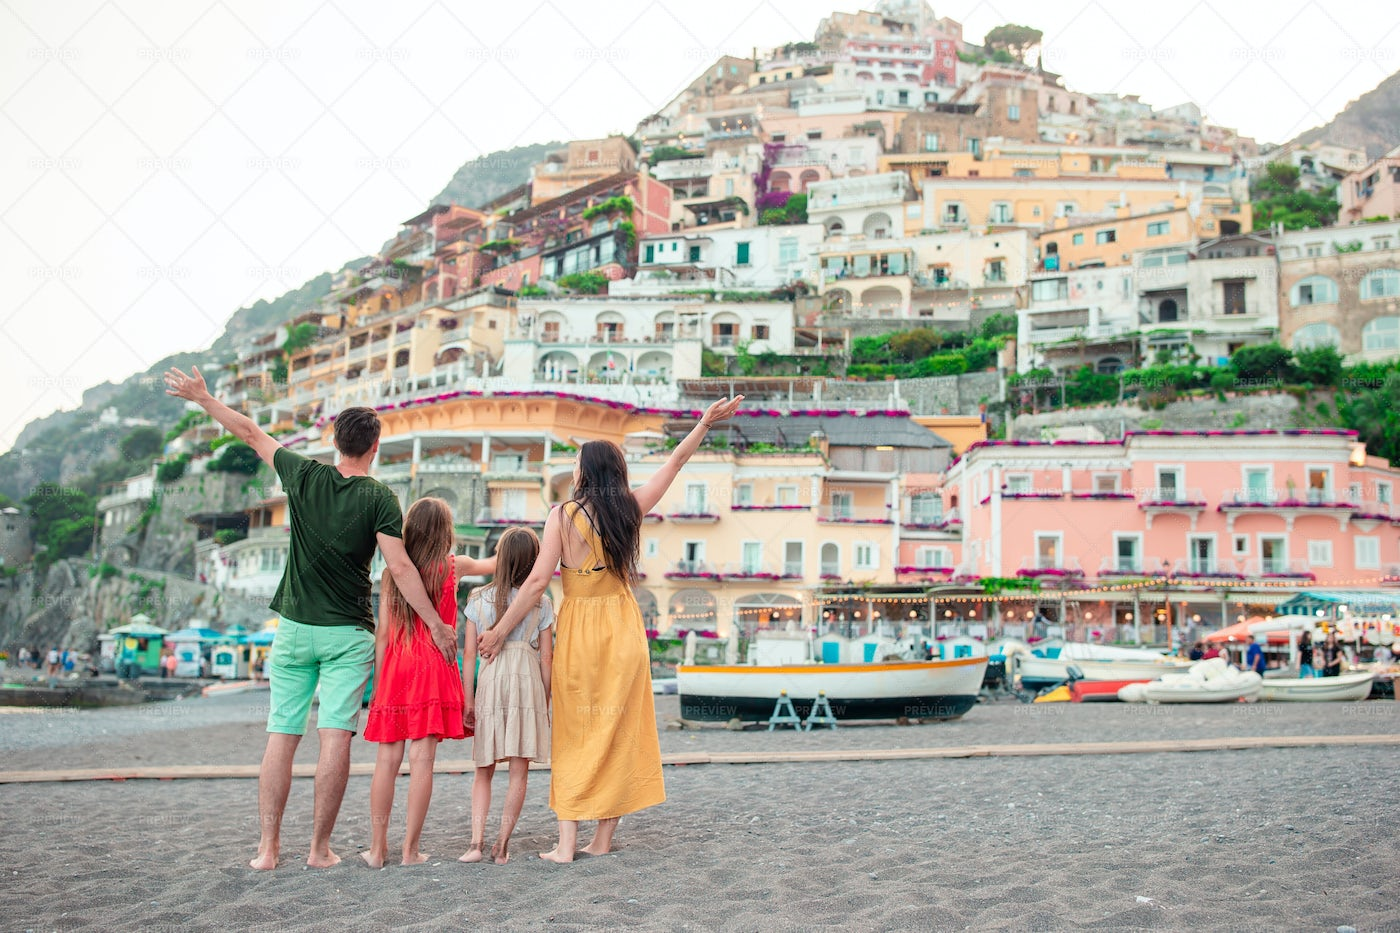 Family Vacations In A Coastal Town: Stock Photos